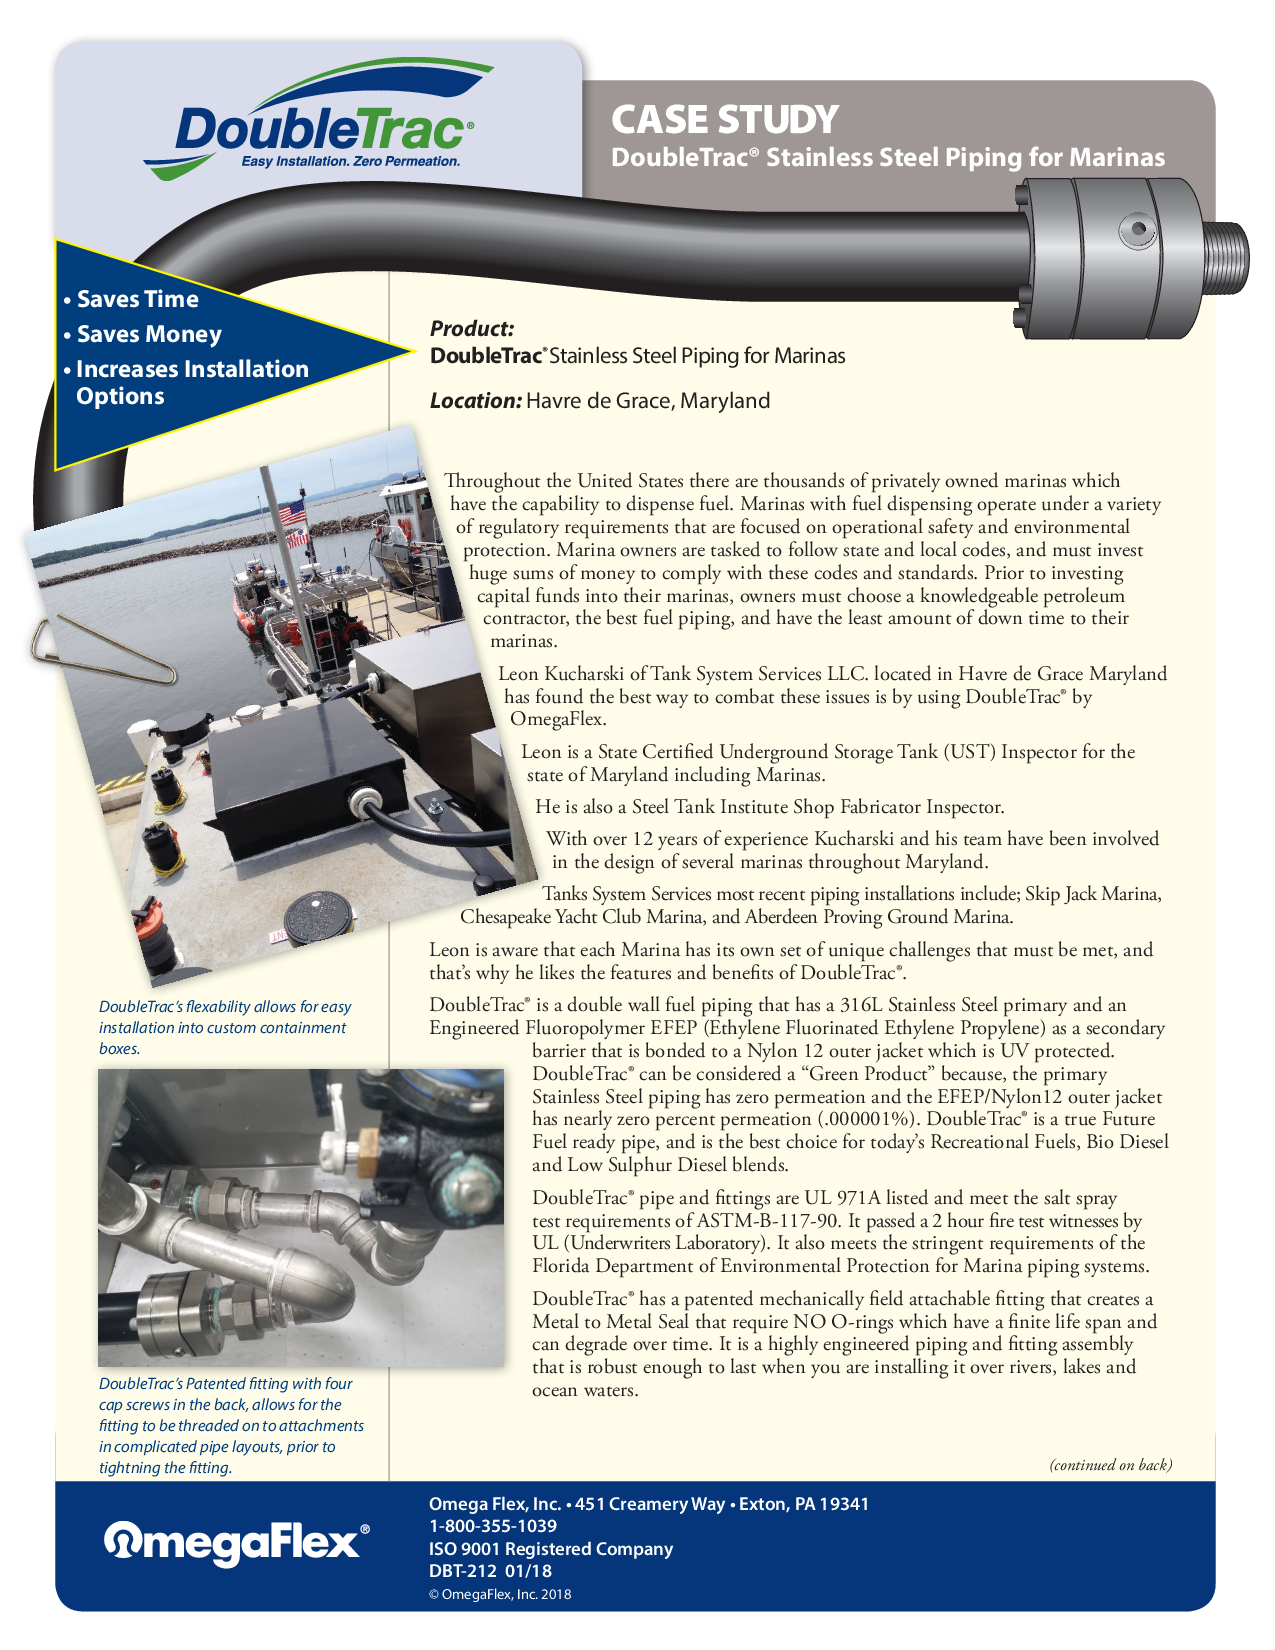 Stainless Steel Piping for Marinas